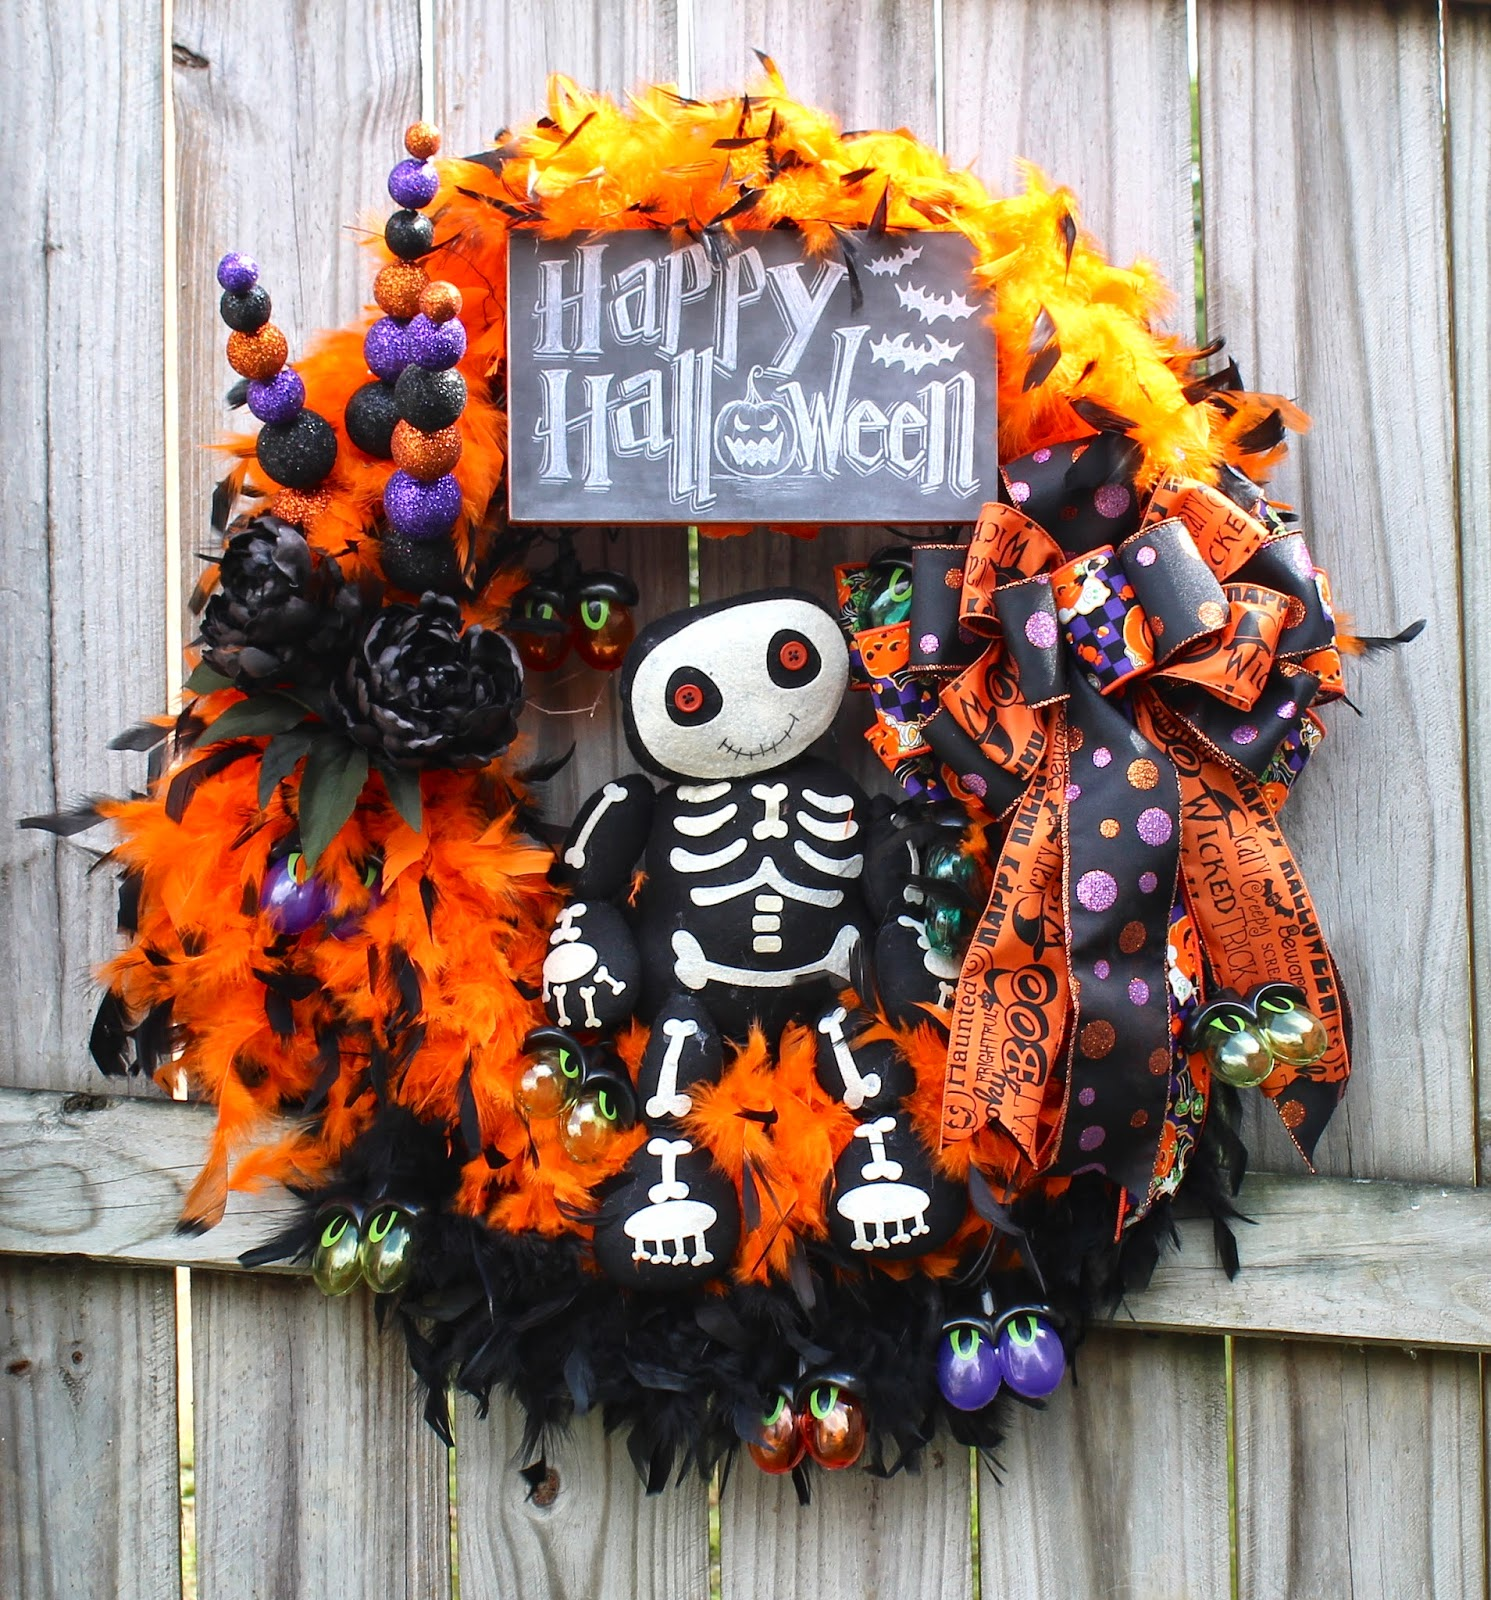 adorable skeleton and spooky eye lights feather boa happy halloween wreath